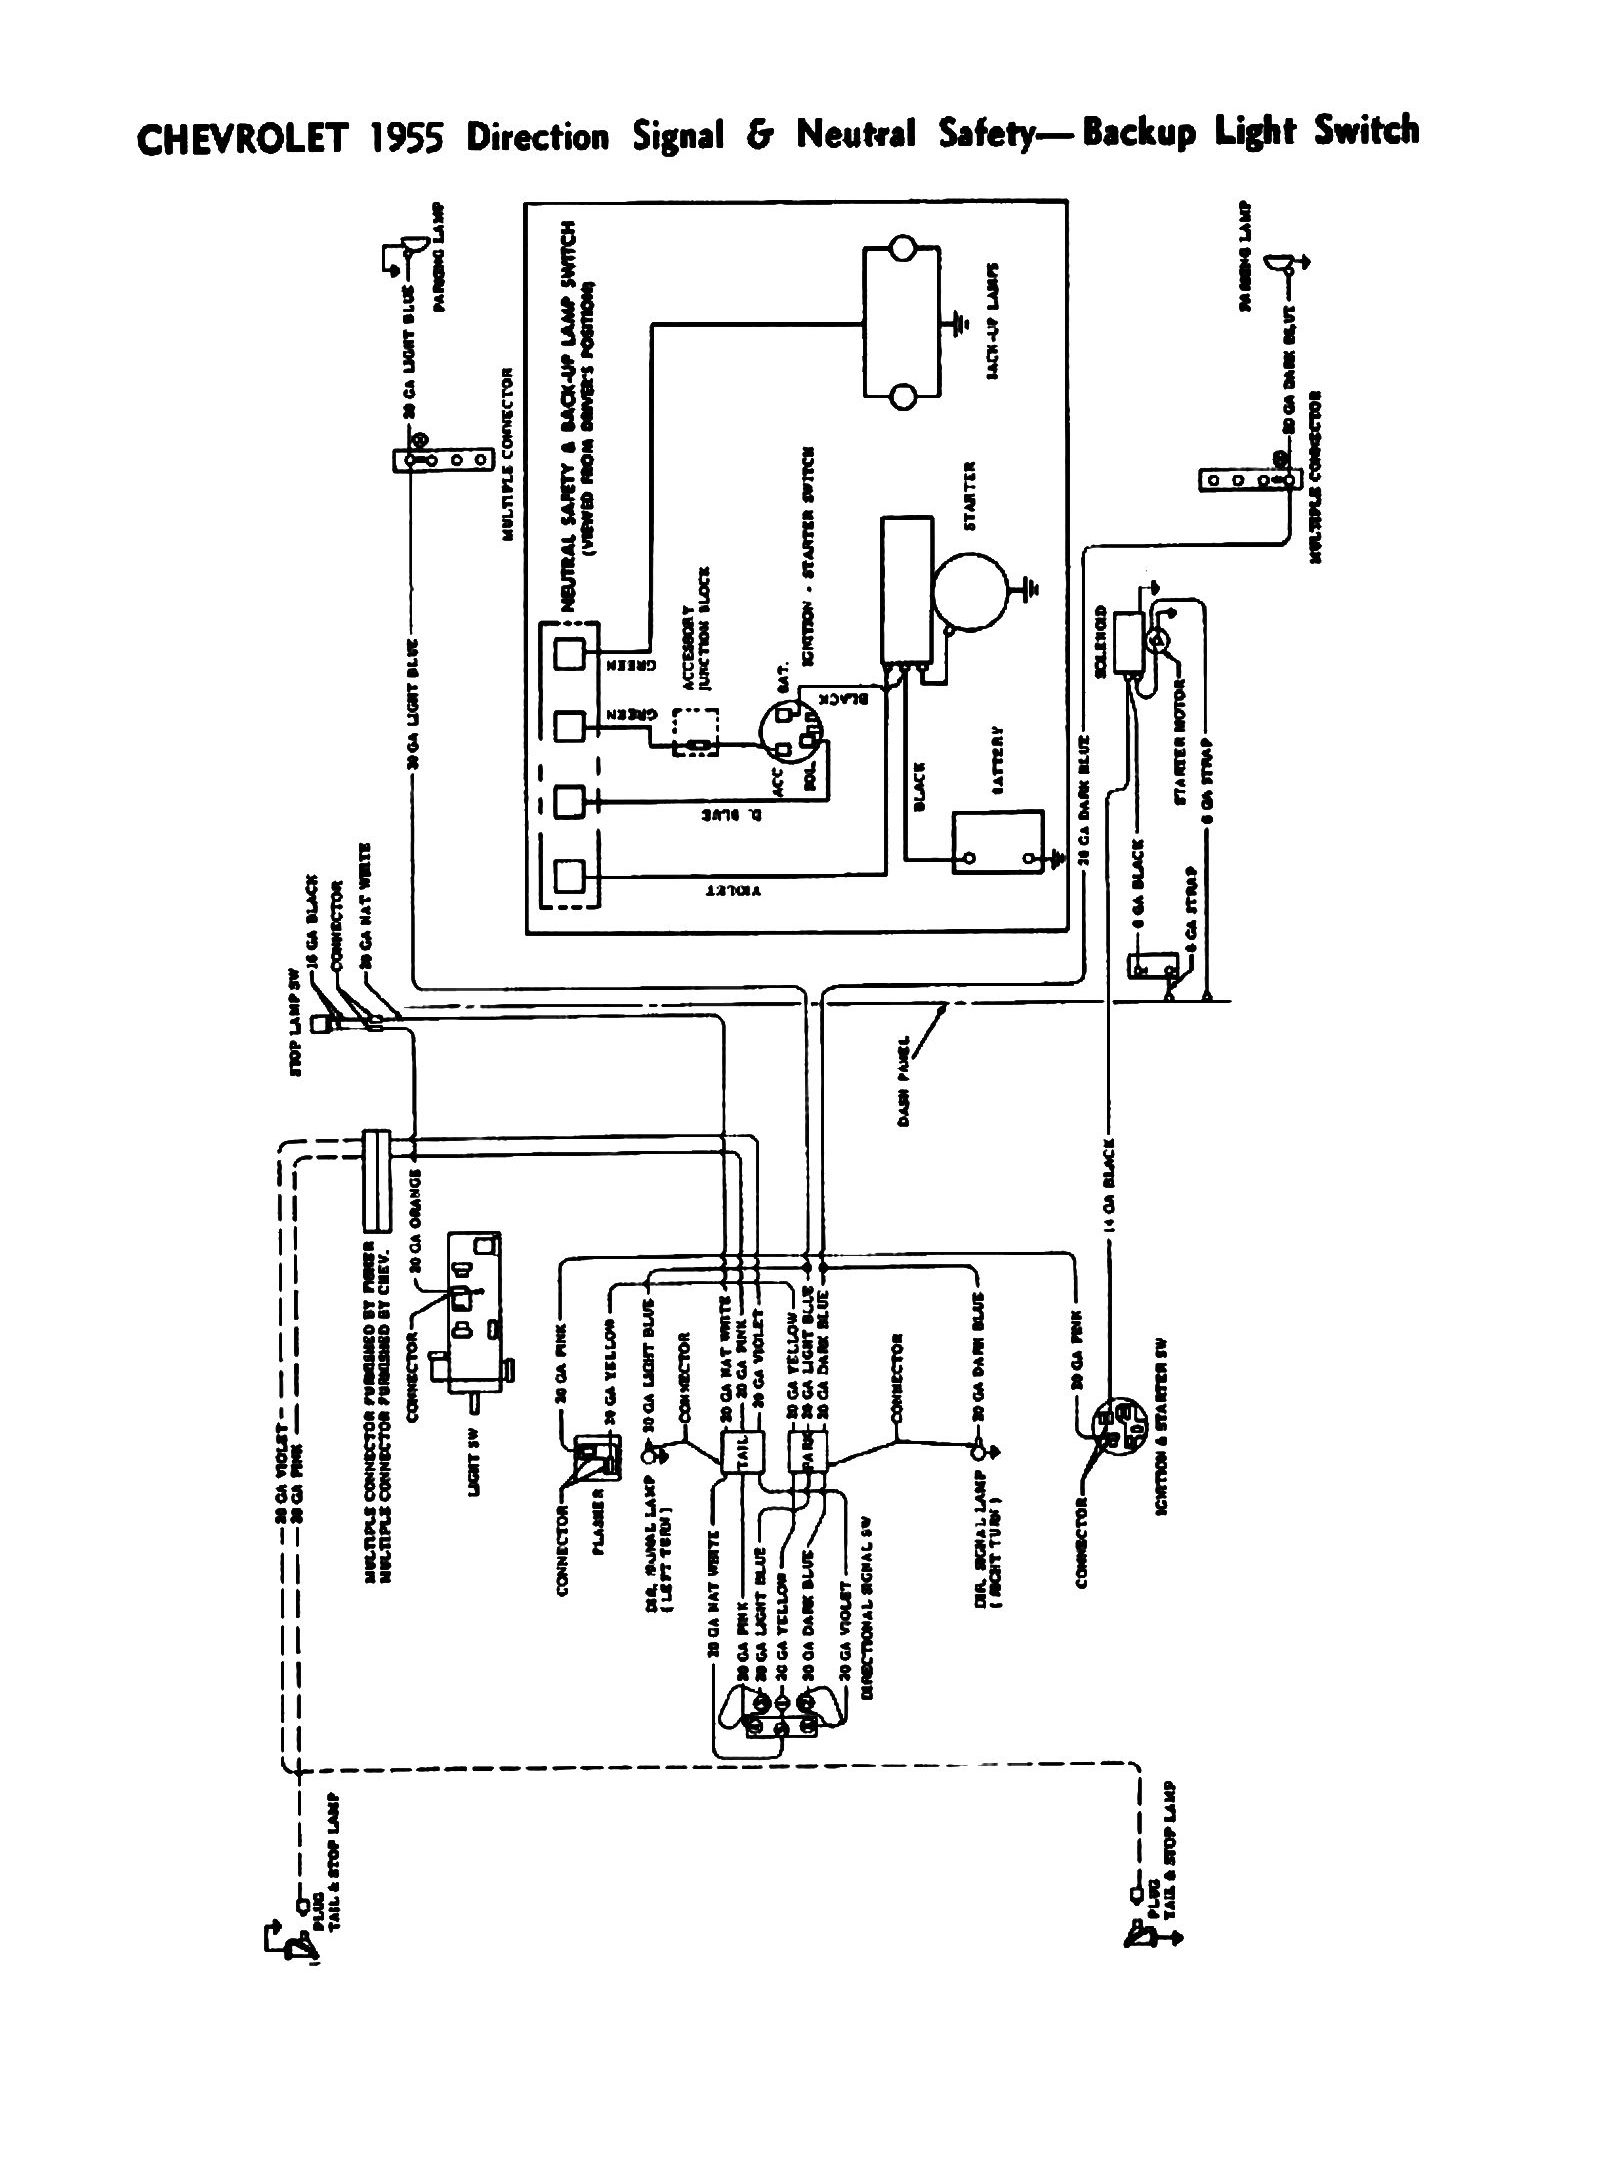 Chevy Wiring Diagrams 1977 Chevrolet Truck Turn Signal Diagram Free Picture 1955 Directional Signals Neutral Safety Backup Switches